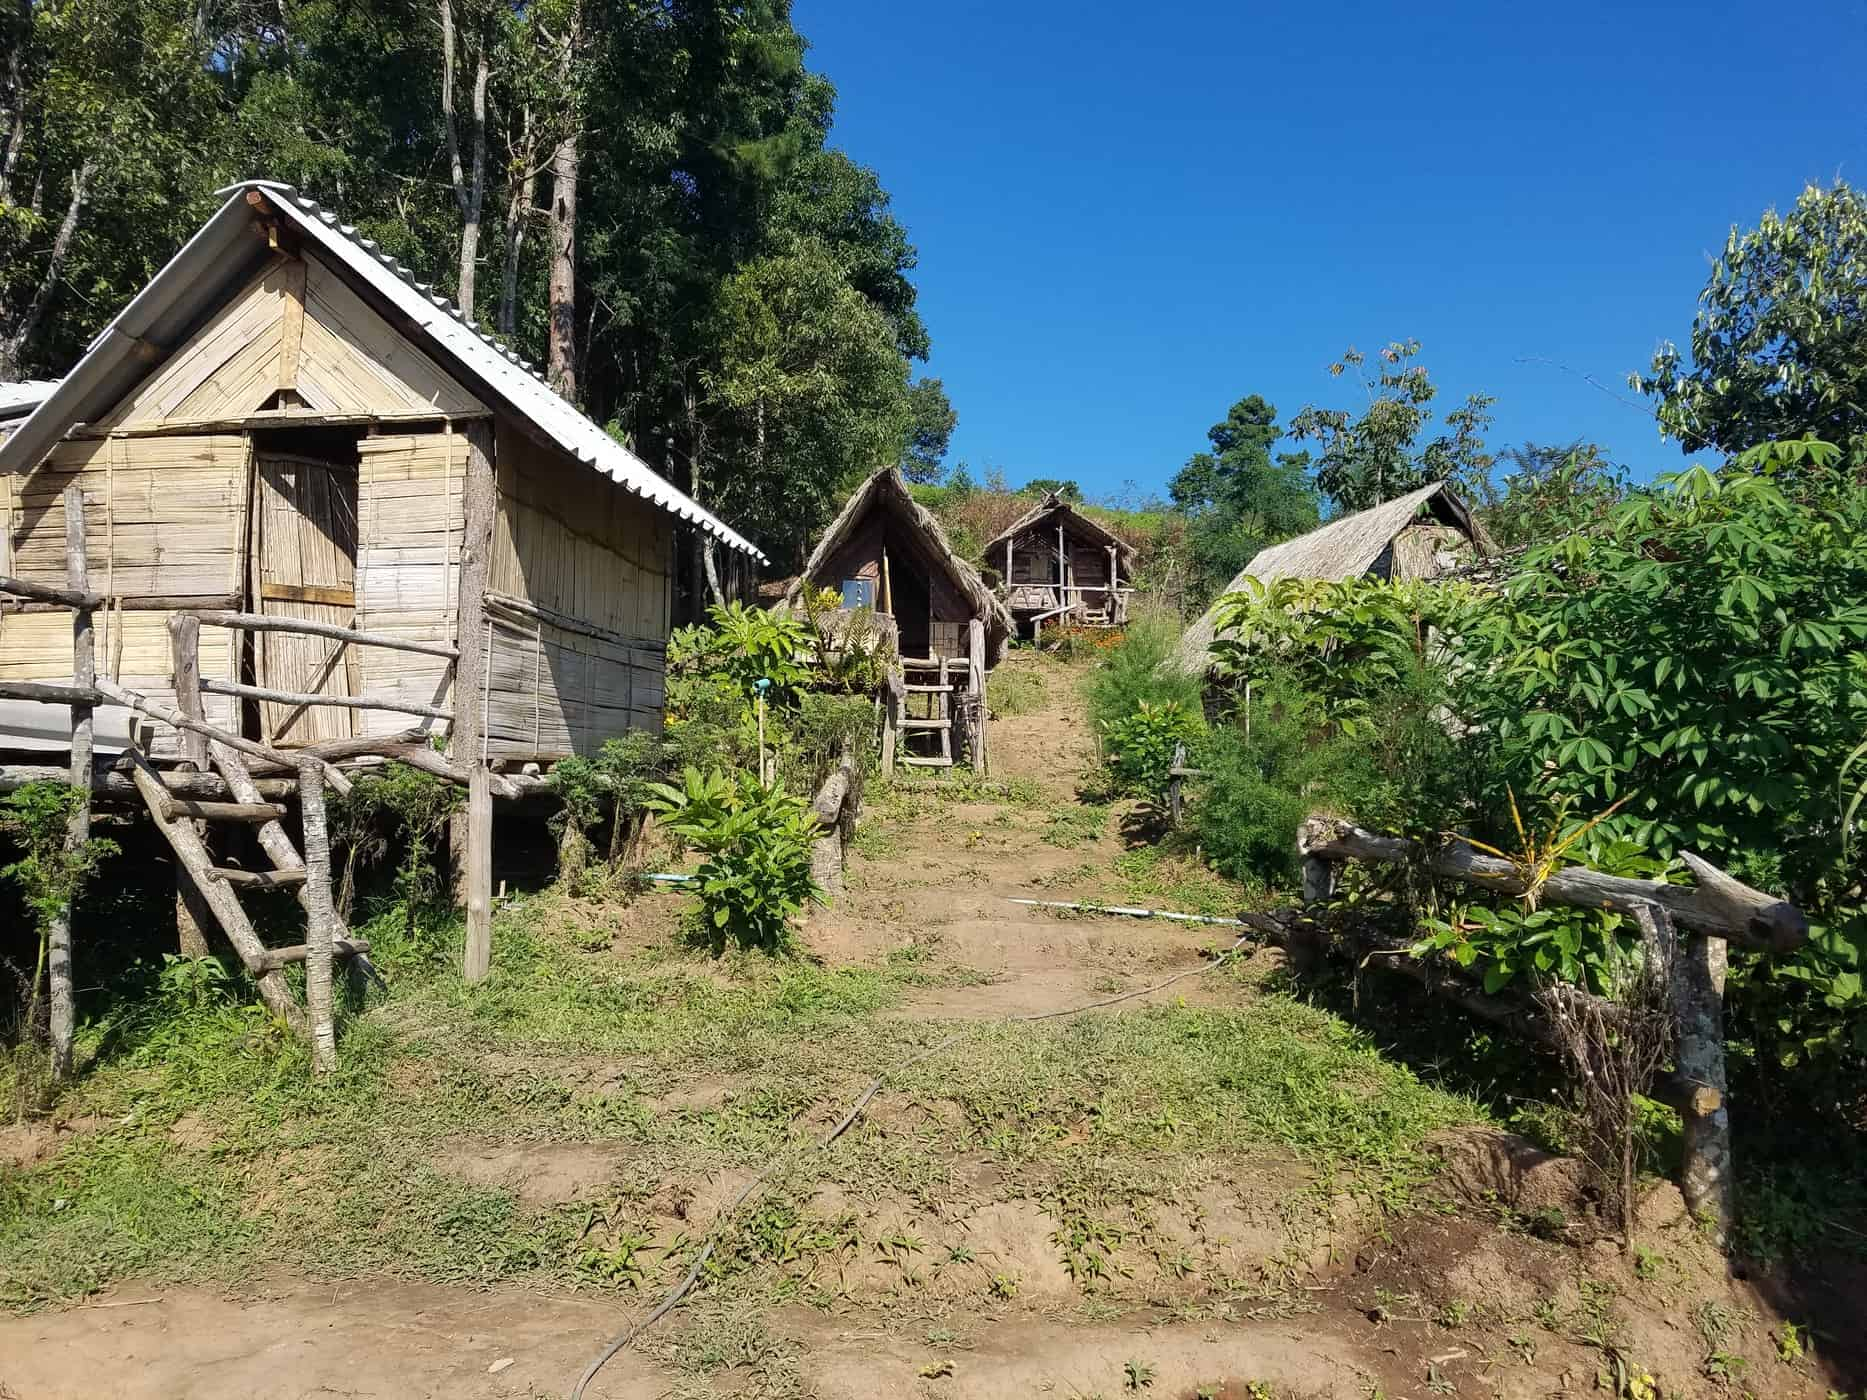 Indigenous huts in Doi Inthanon National Park Chiang Mai